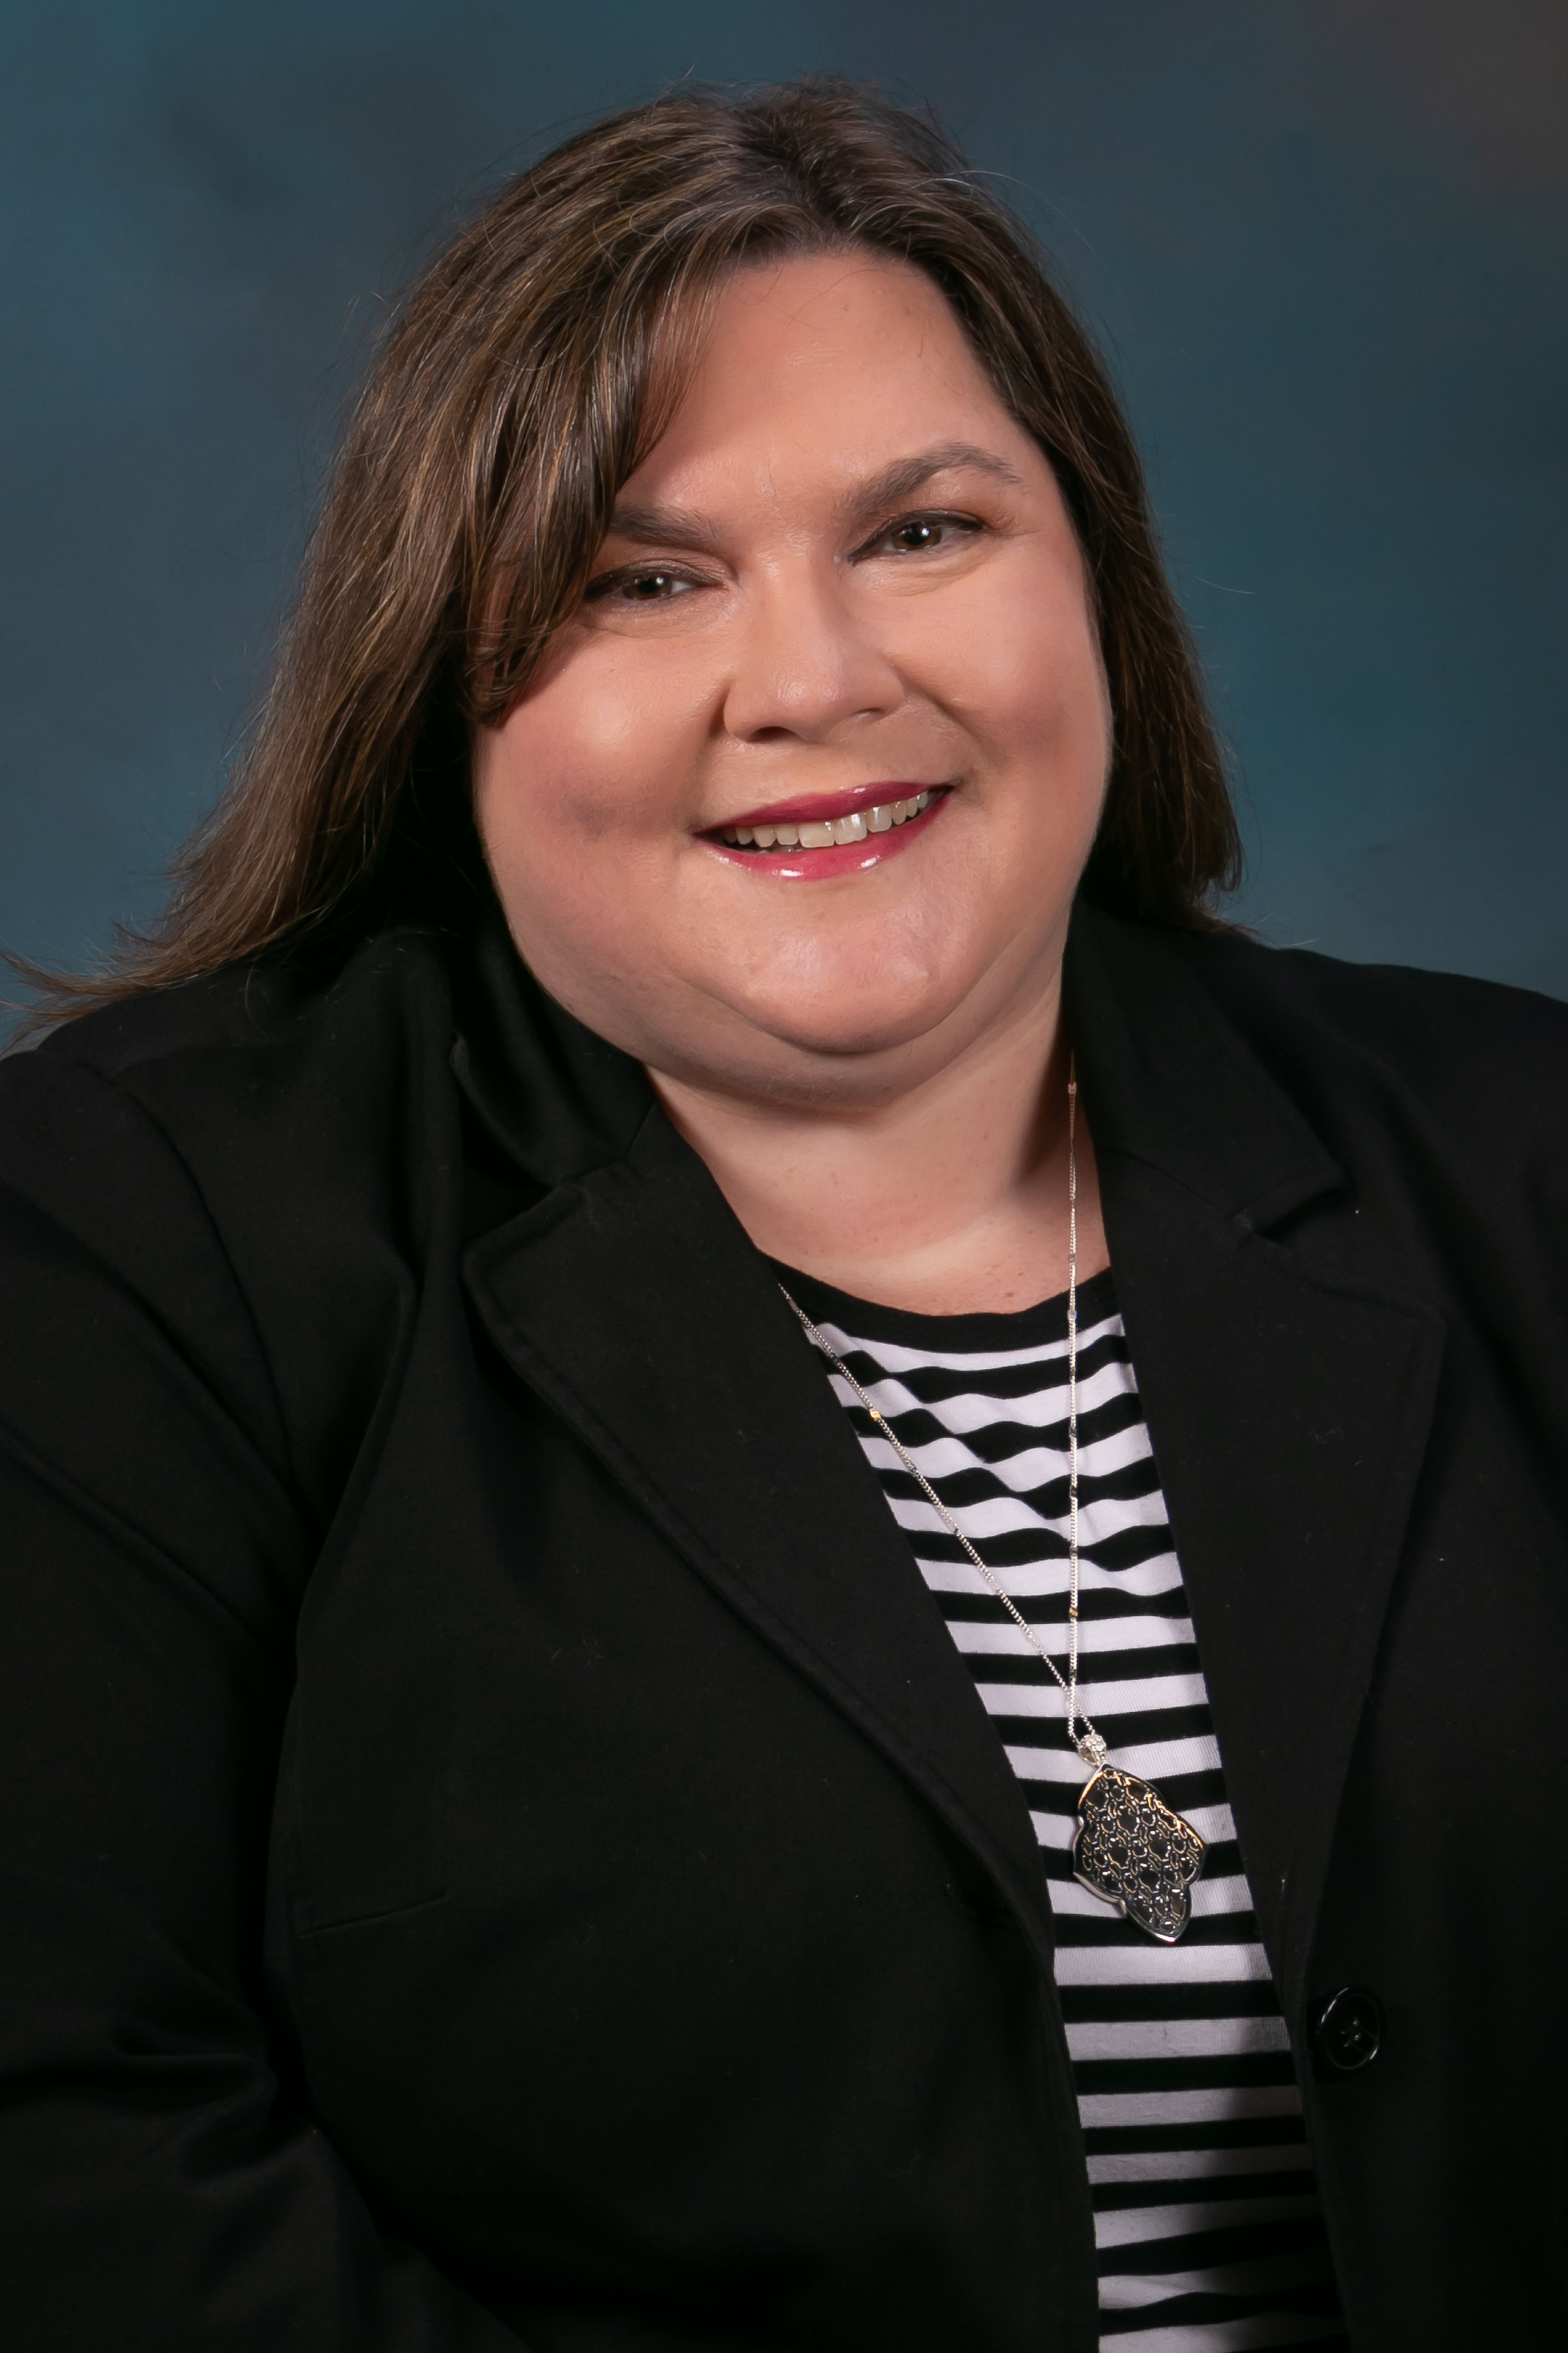 Tammy Kelch Embrey, Director of Intergovernmental Relations